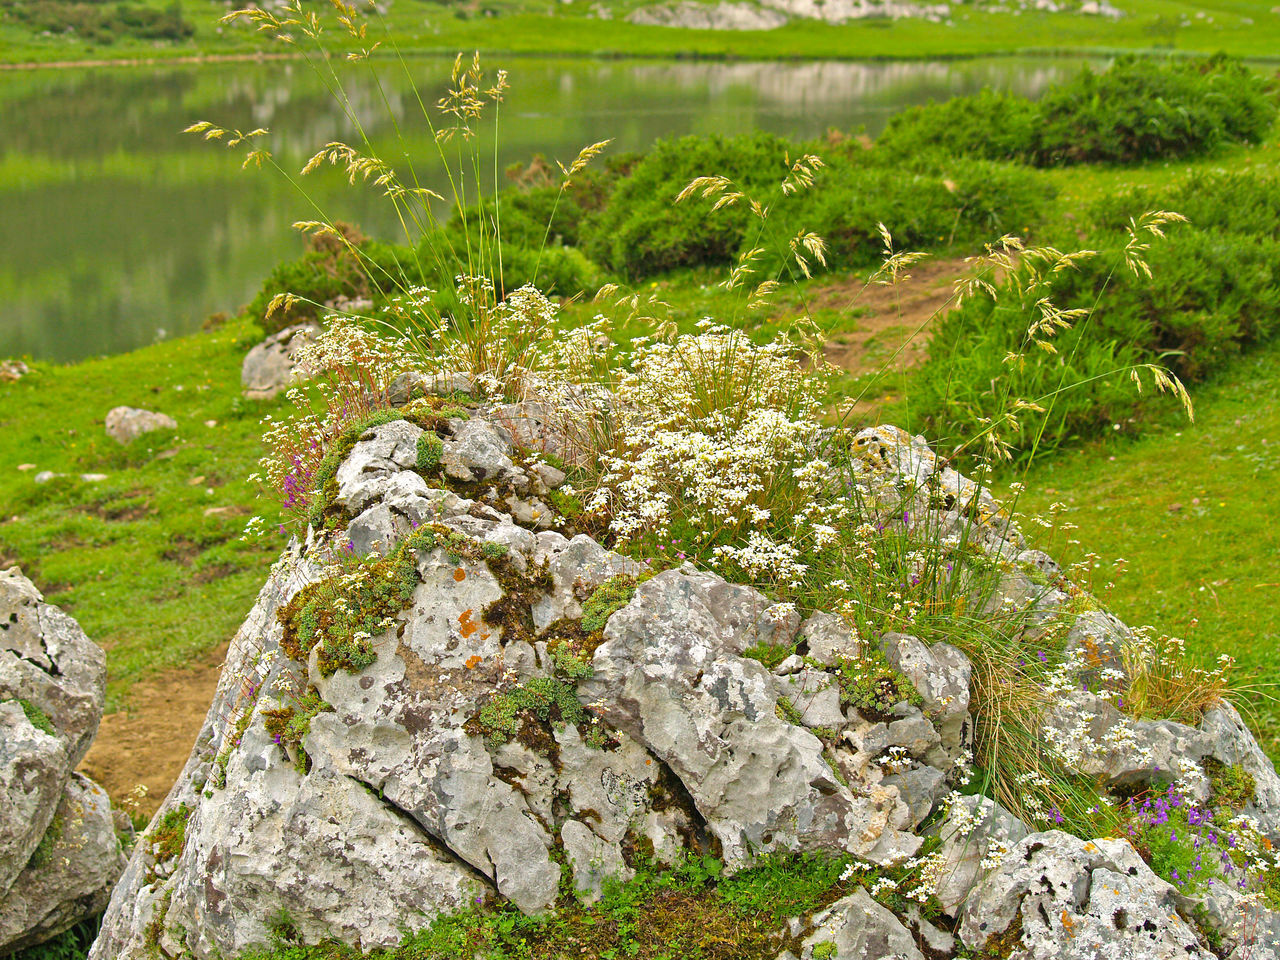 Backgrounds Day Environment Freshness Grass Grass Green Green Color Mountain Nature Nature No People Outdoors Pasture Pasture, Paddock, Grassland, Pastureland Picos De Europa Rock Rocky Spring Springtime Water